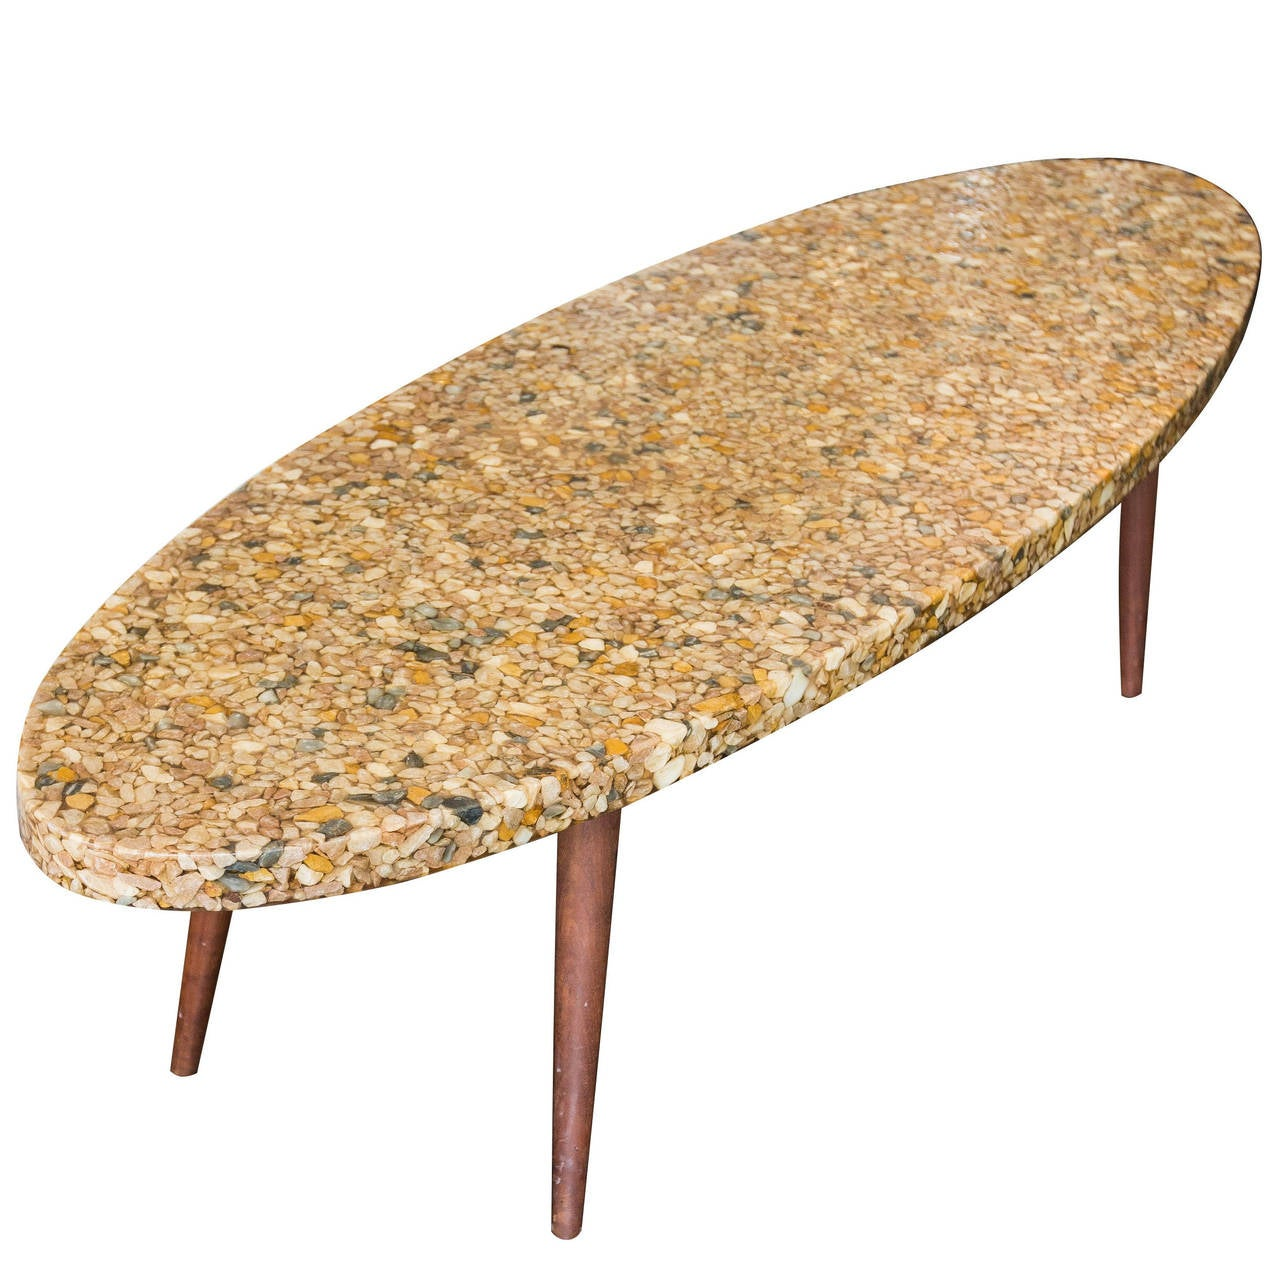 Vintage Surfboard Coffee Table Made Of River Rock In Resin For